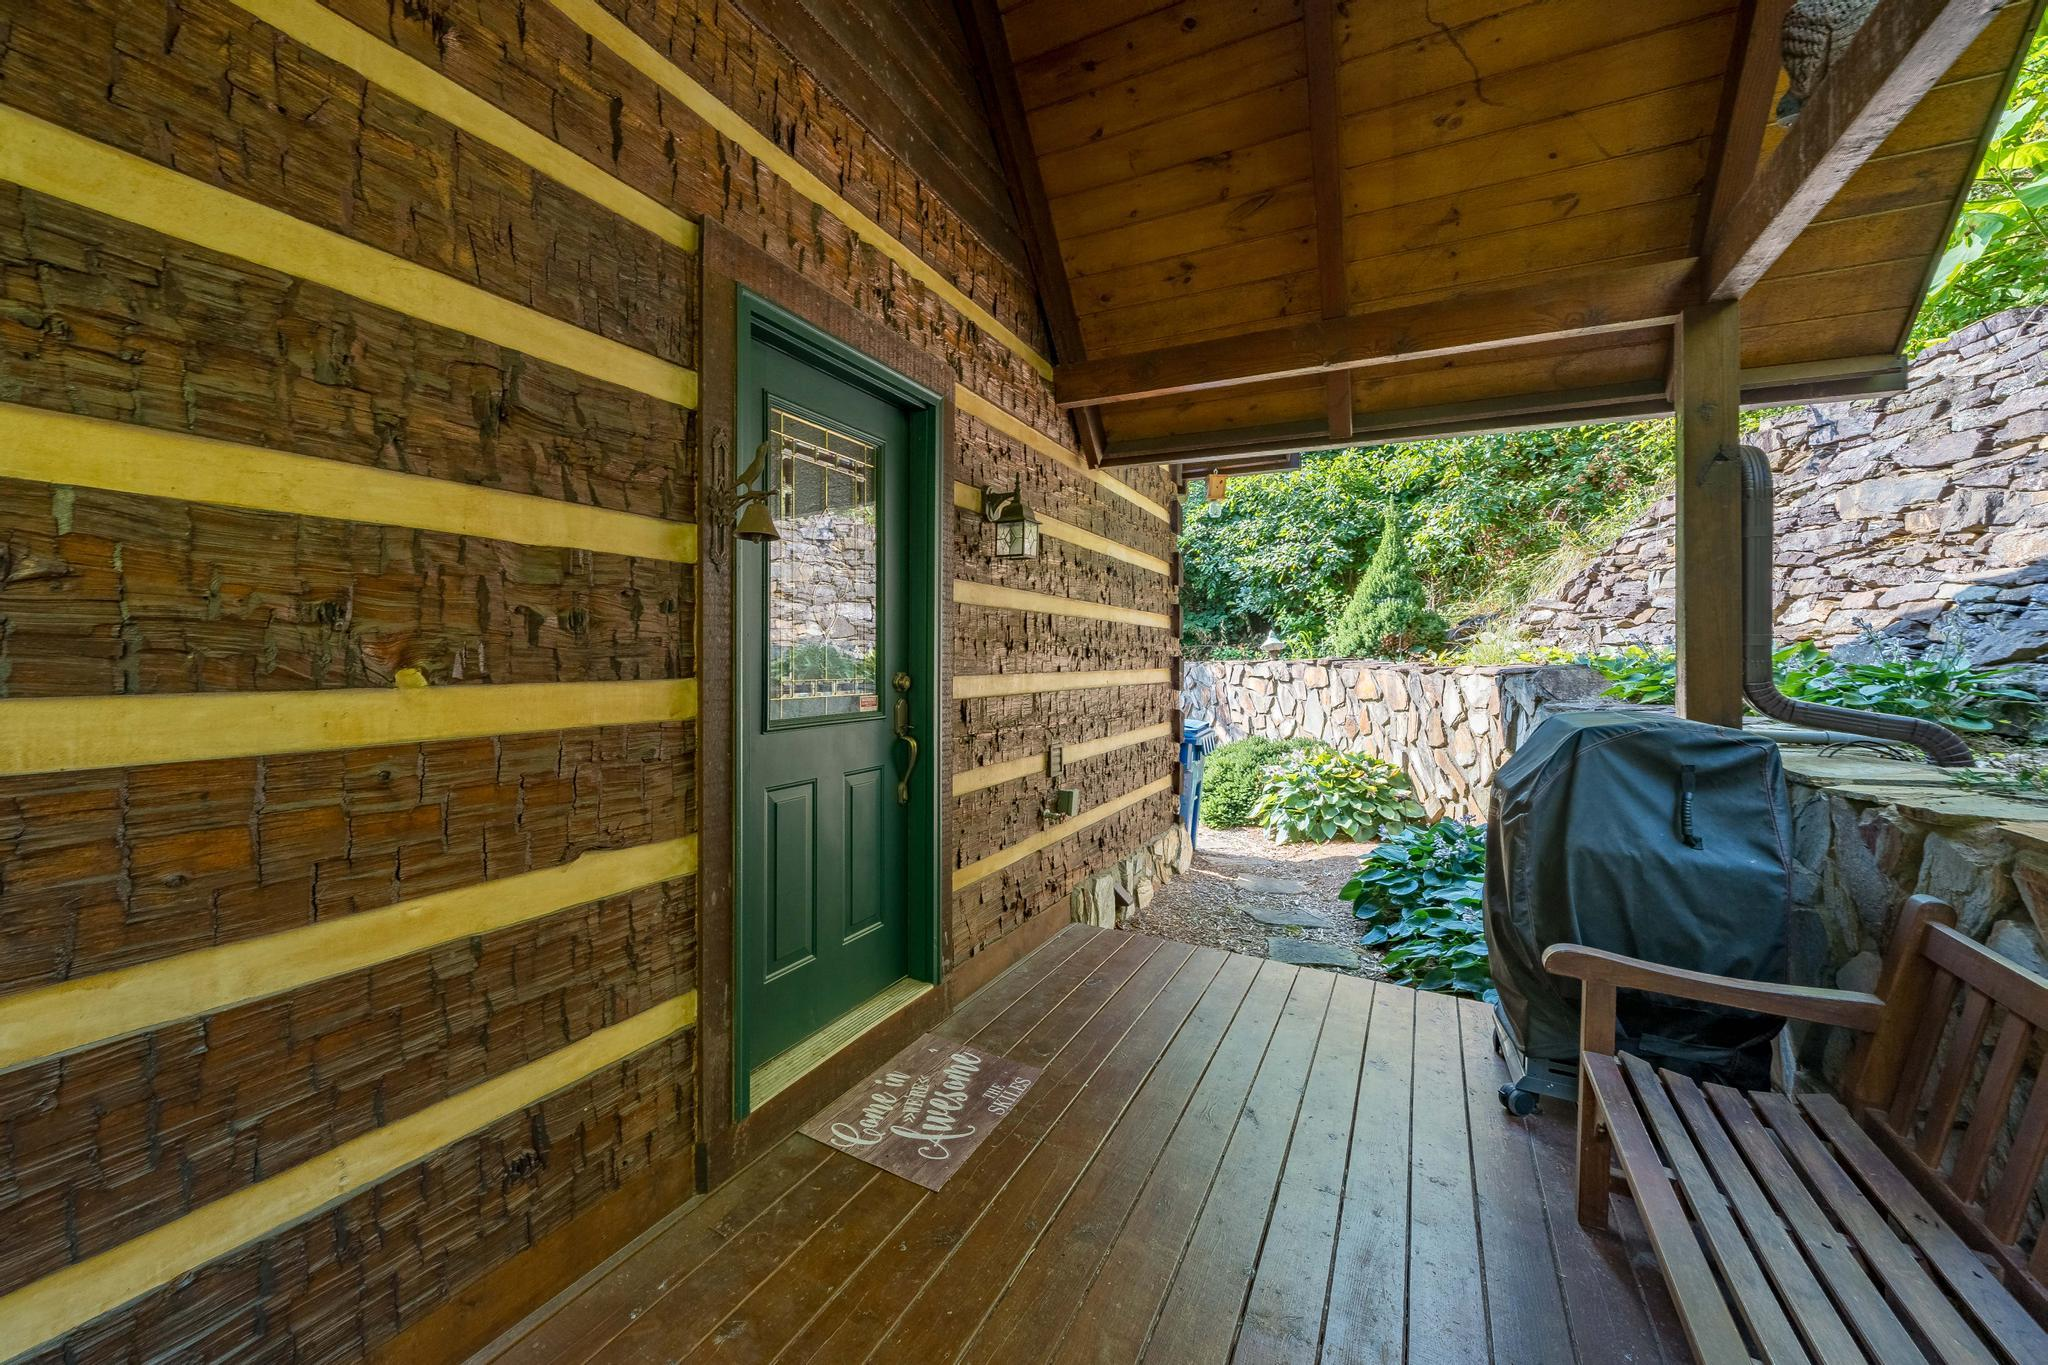 709 cove edge dr (15 of 72)